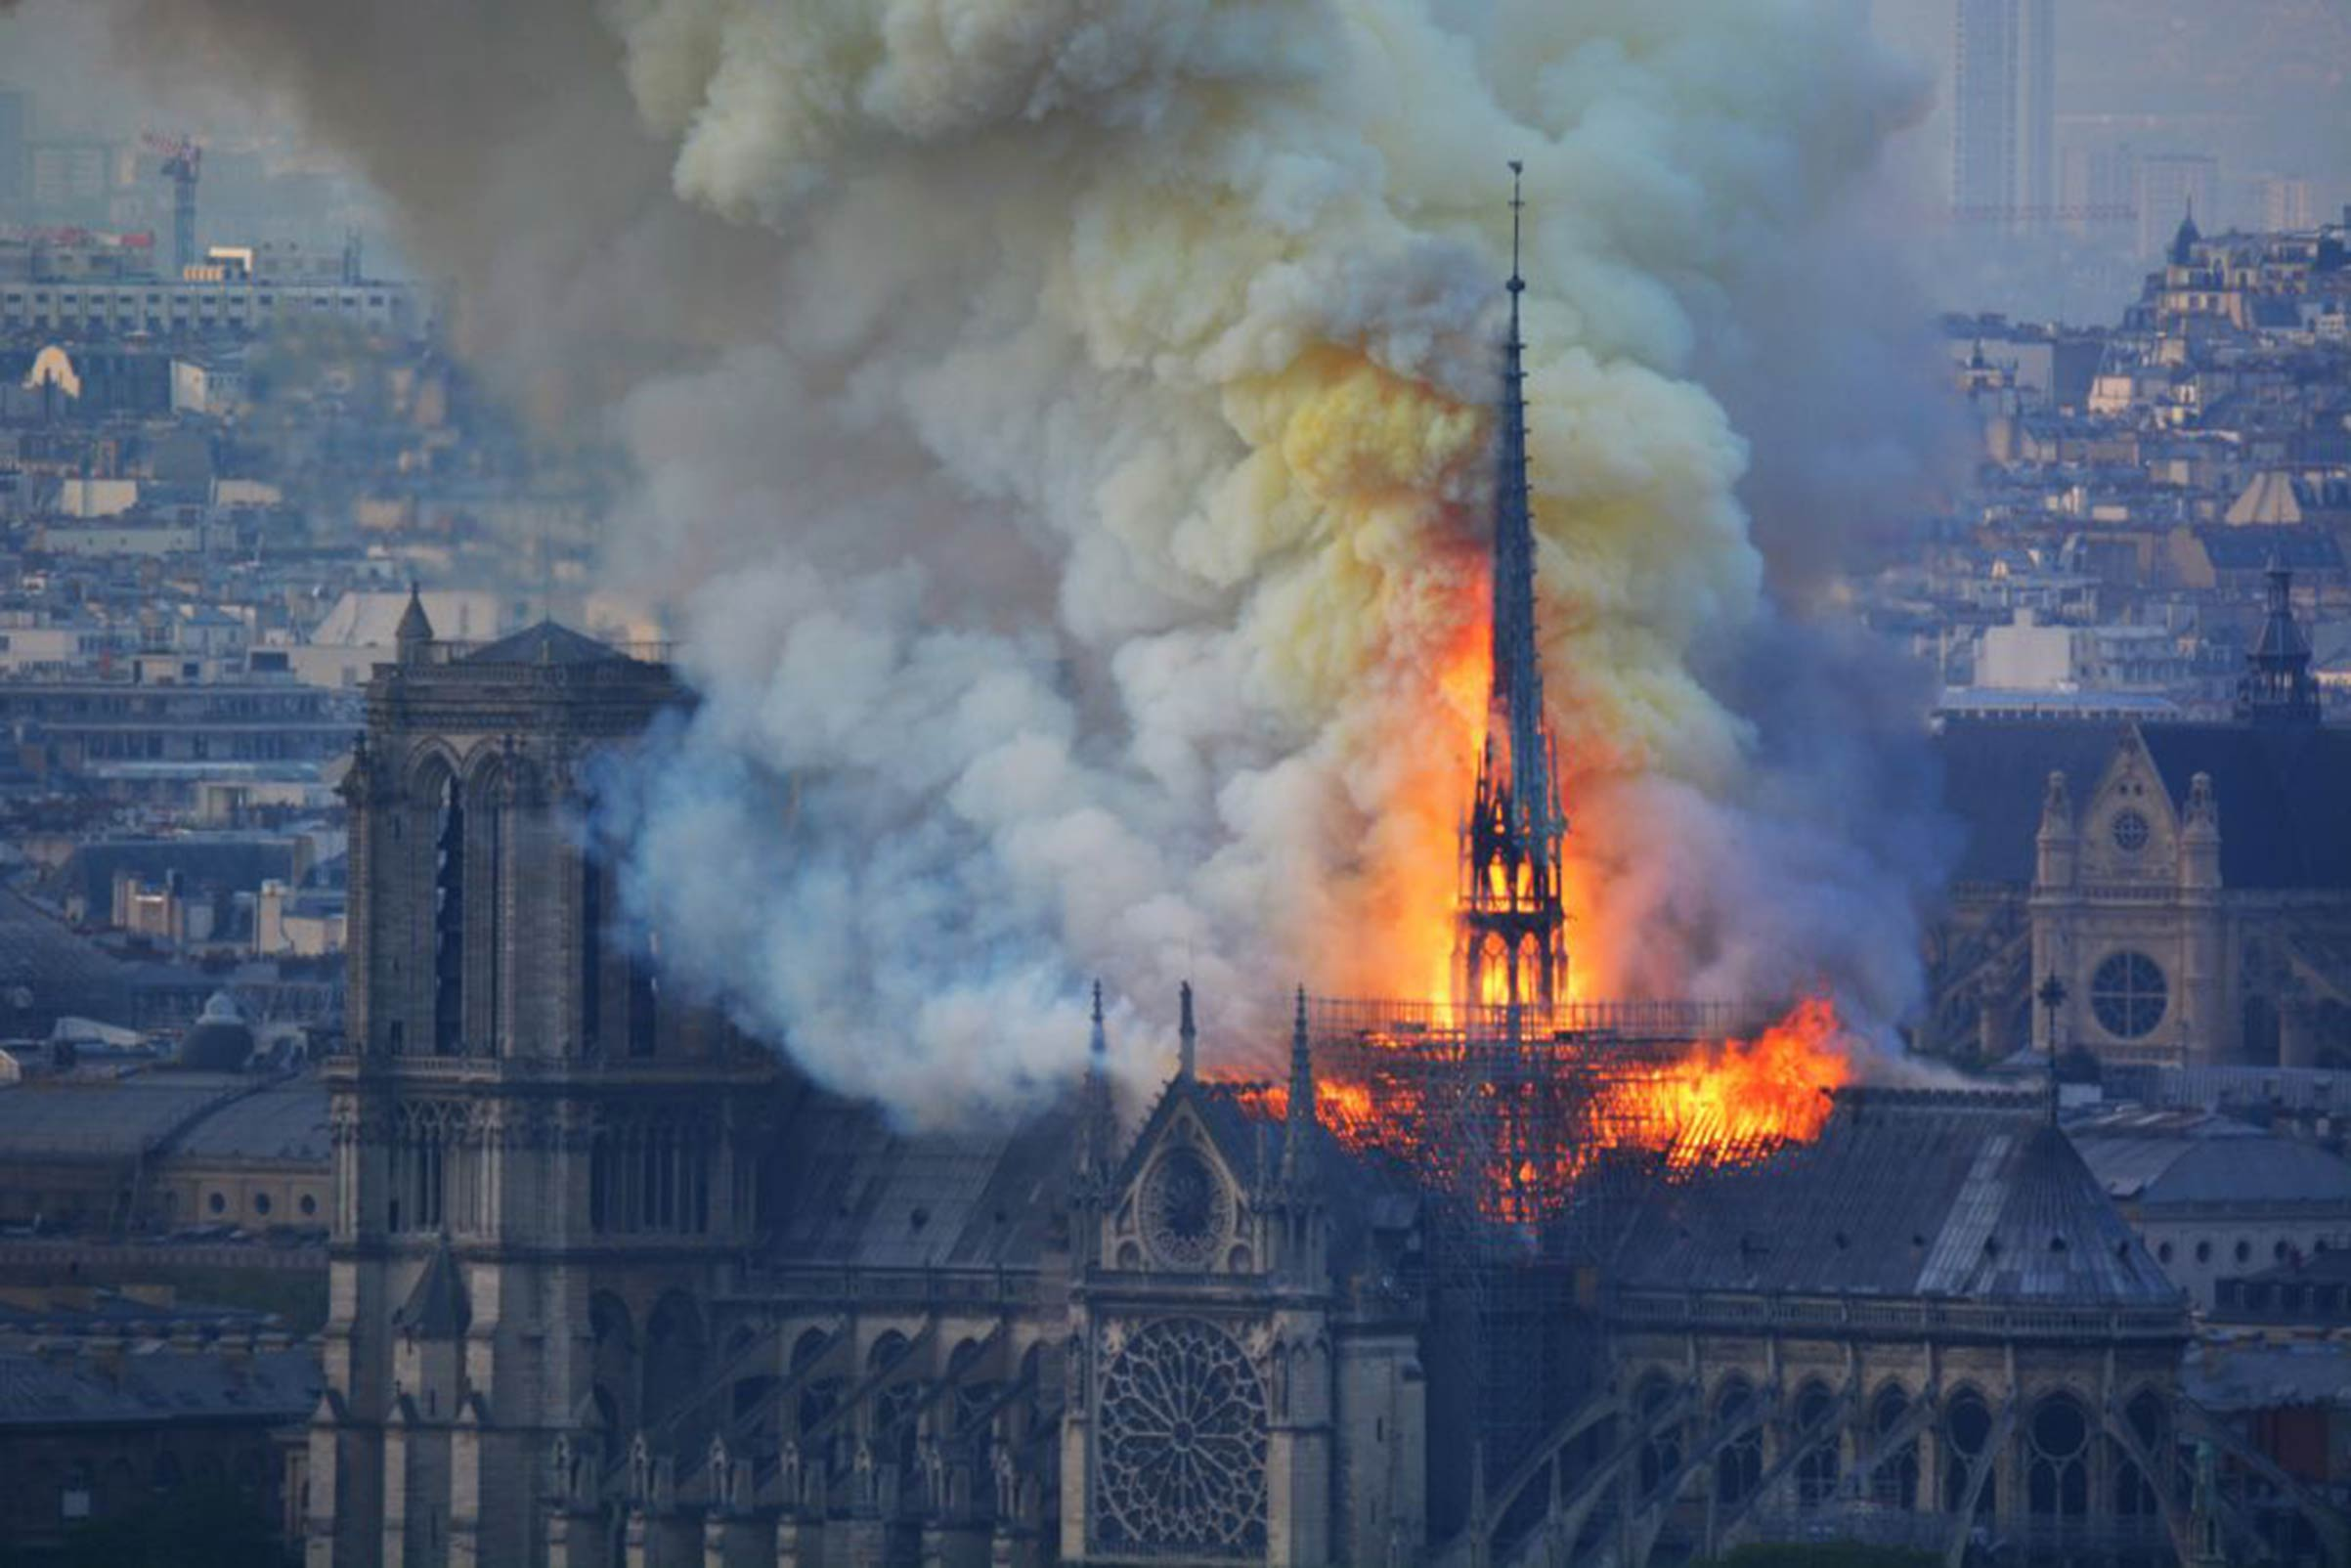 A fire broke out at the landmark Notre-Dame Cathedral in central Paris on April 15, 2019.